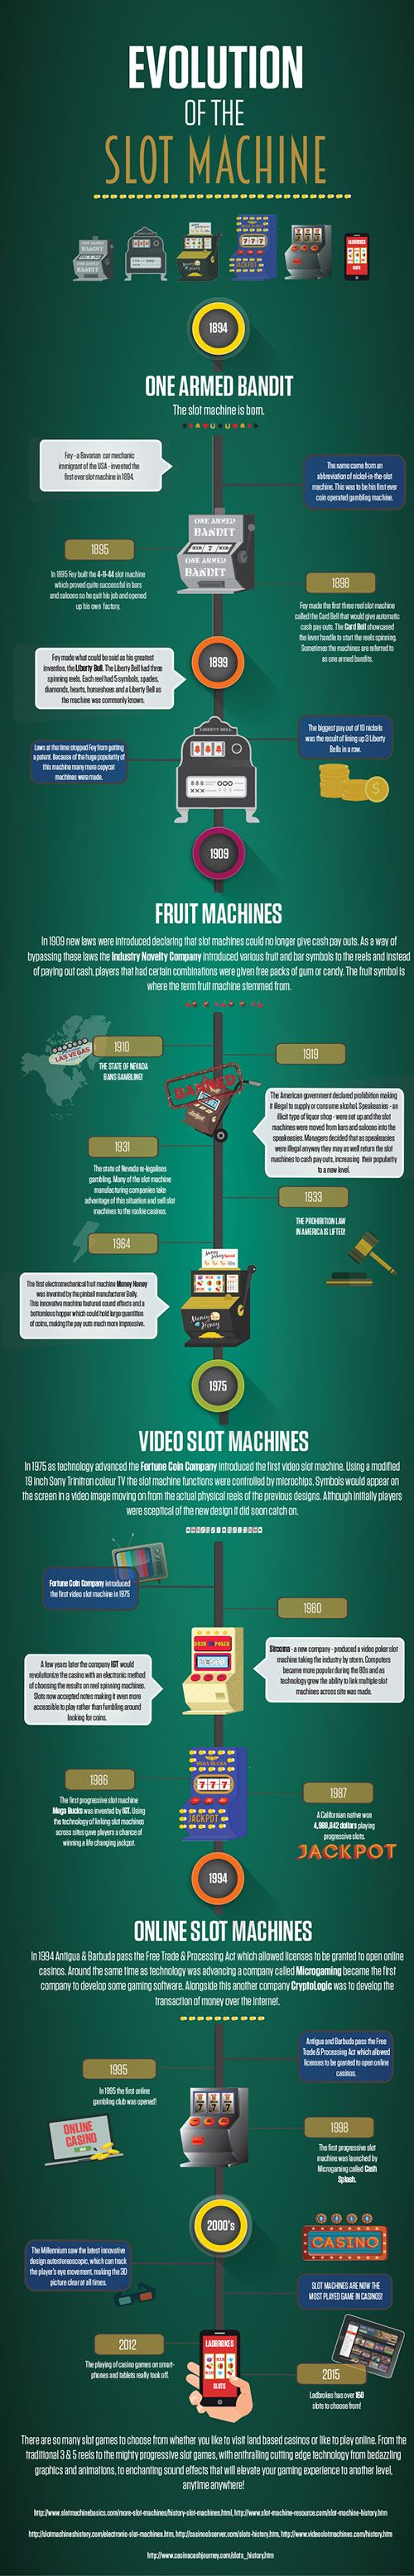 How Slot Machines Evolved